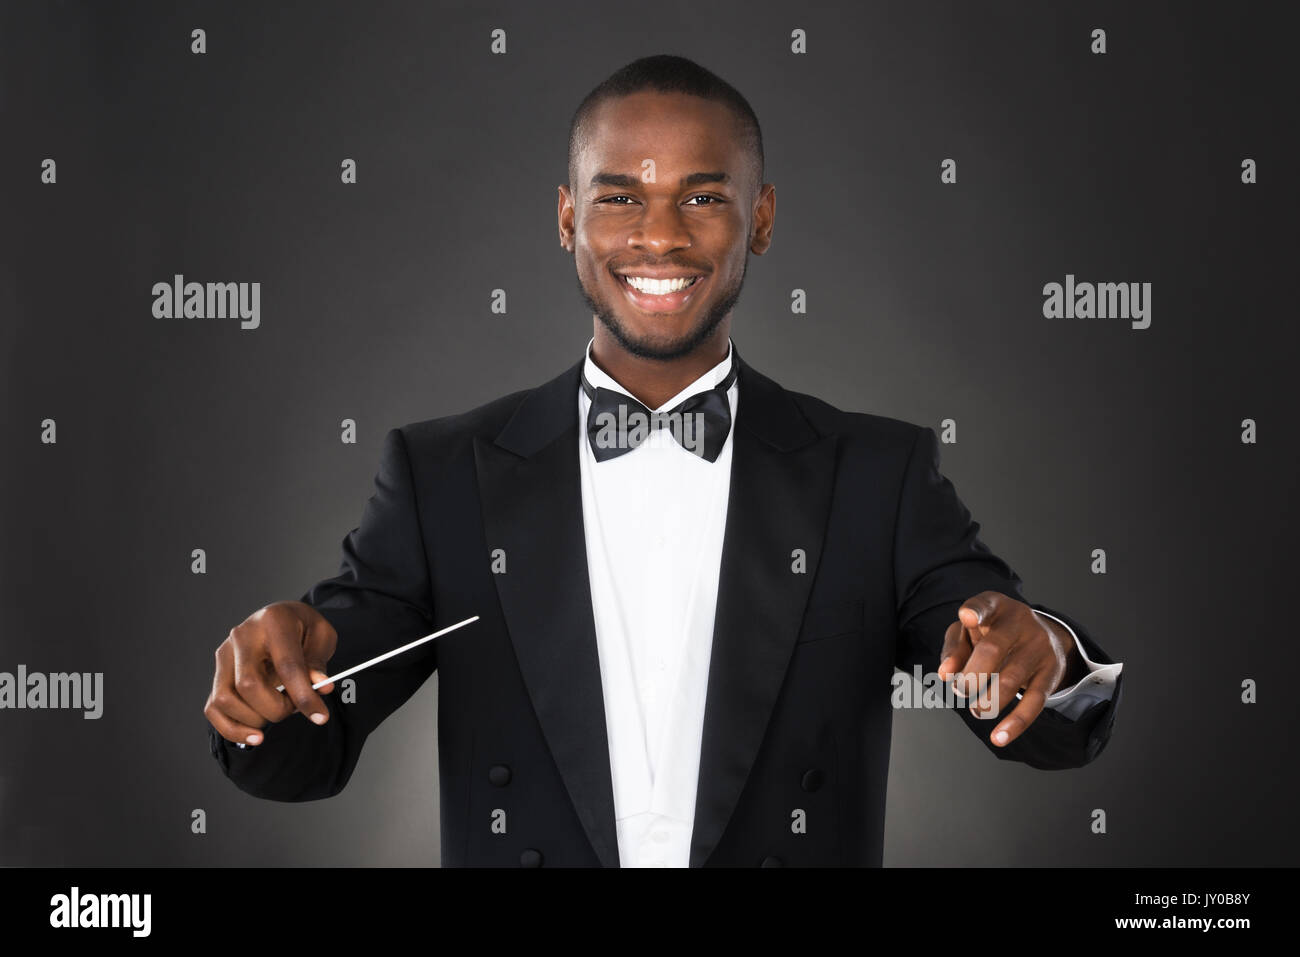 Portrait Of Happy Music Conductor With Baton Against Black Background - Stock Image